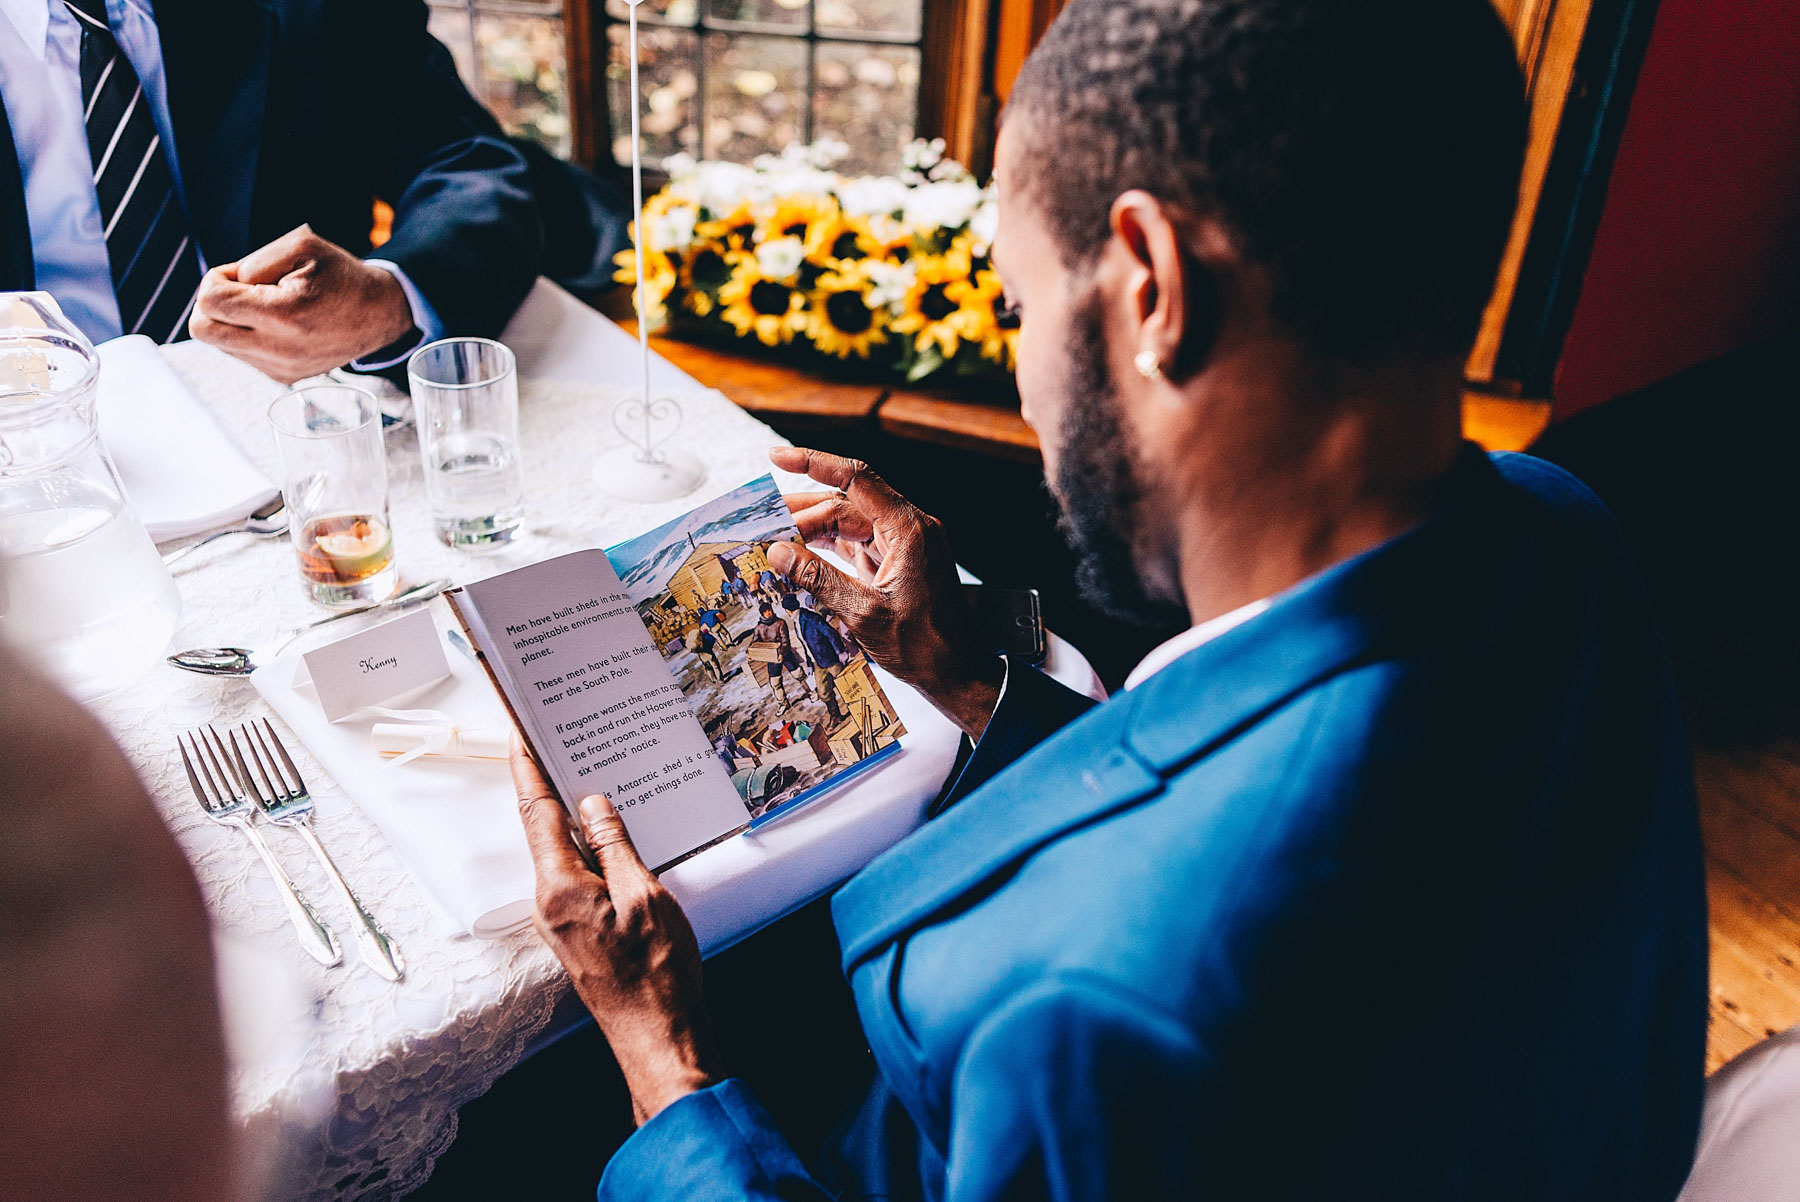 Wedding guest reading book